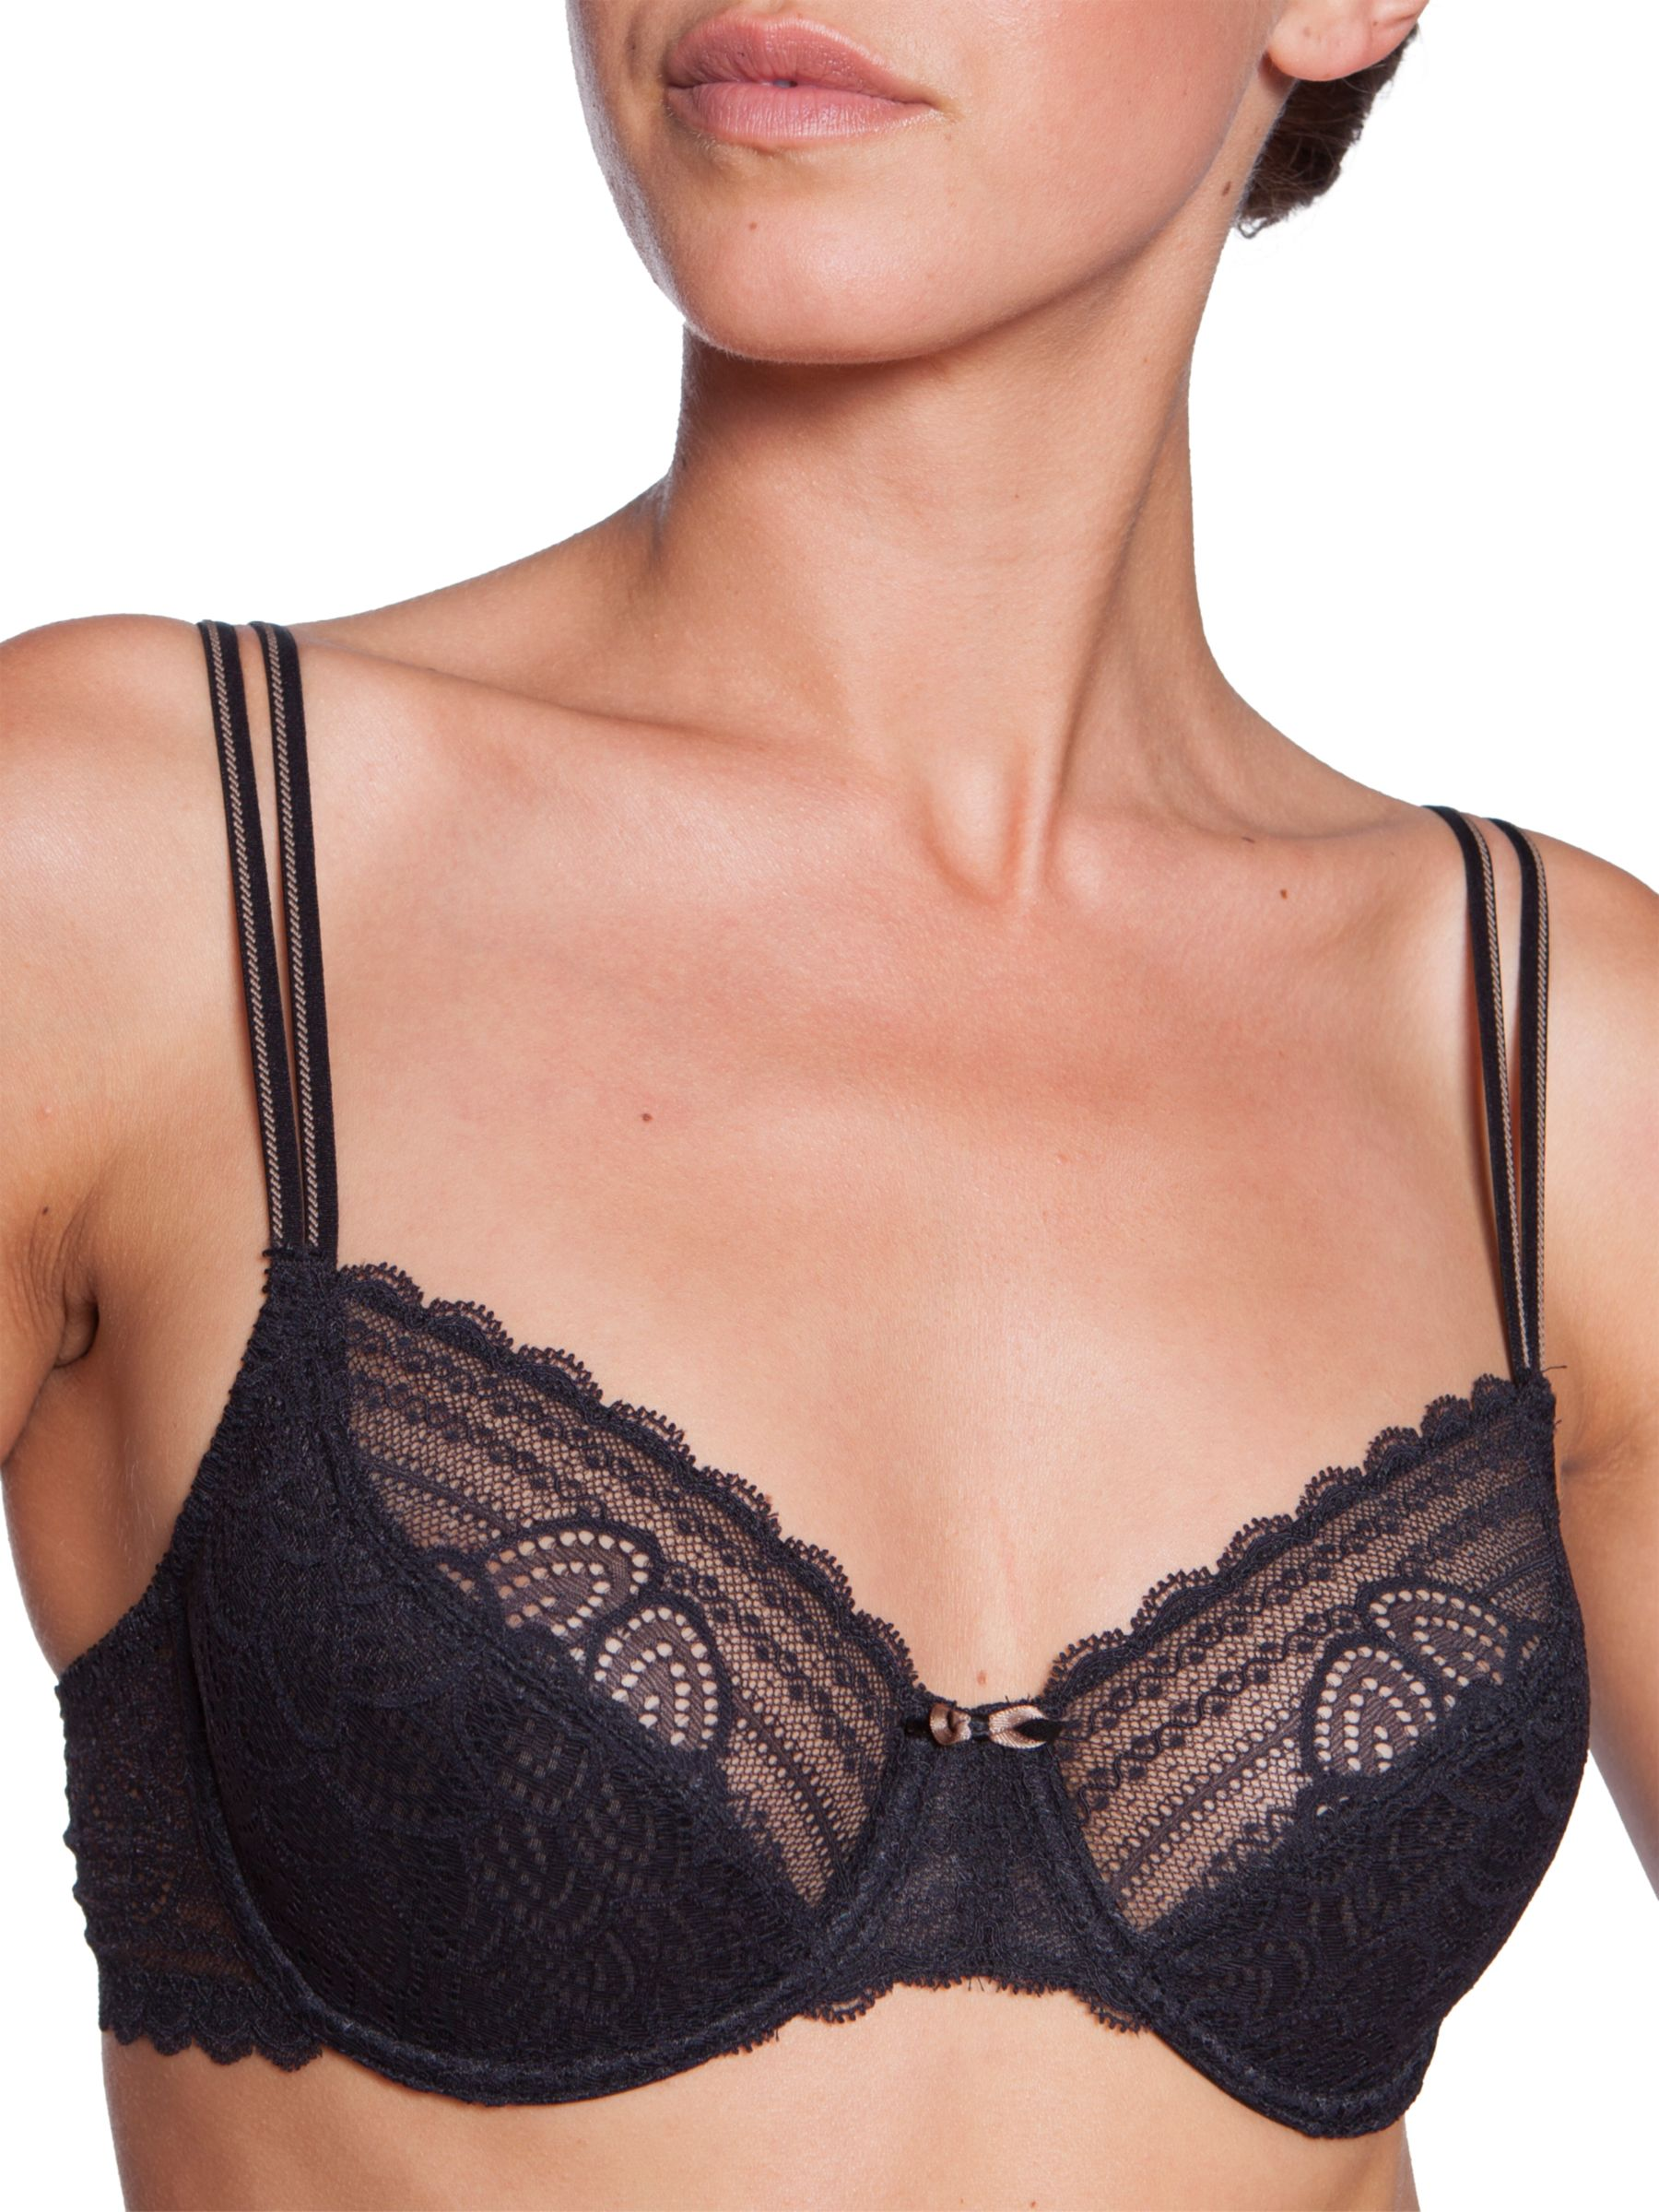 Chantelle Merci Underwired Bra, Black